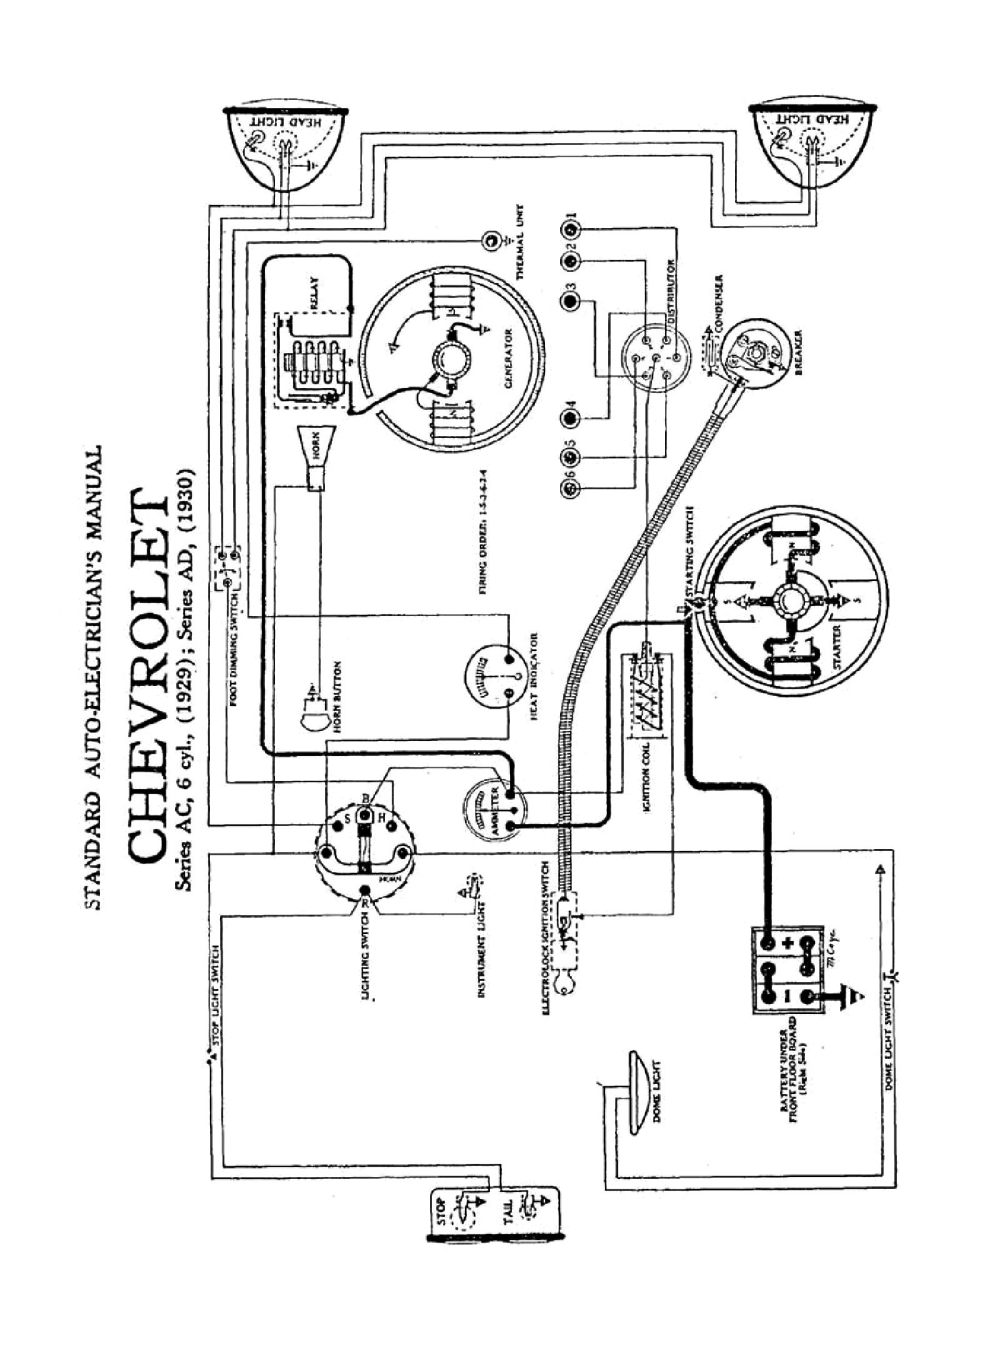 medium resolution of 62 ford generator wiring diagram wiring diagram blogs 9n ford generator wiring diagram 62 ford generator